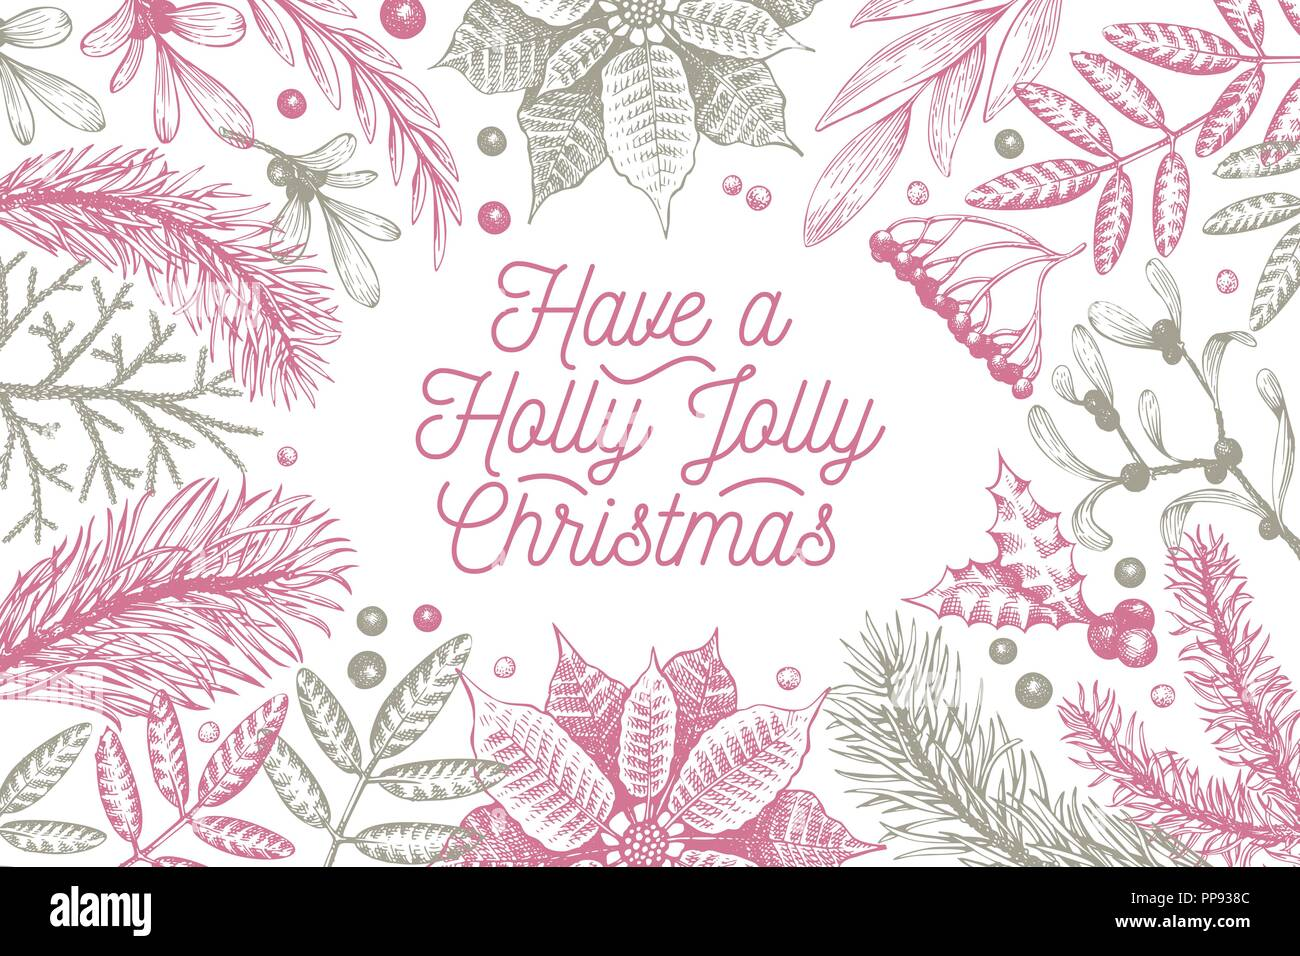 Merry Christmas design template. Vector hand drawn illustrations. Greeting Christmas card in retro style. Frame with coniferous, pine branches, berries, holly, mistletoe. Winter forest background. - Stock Vector